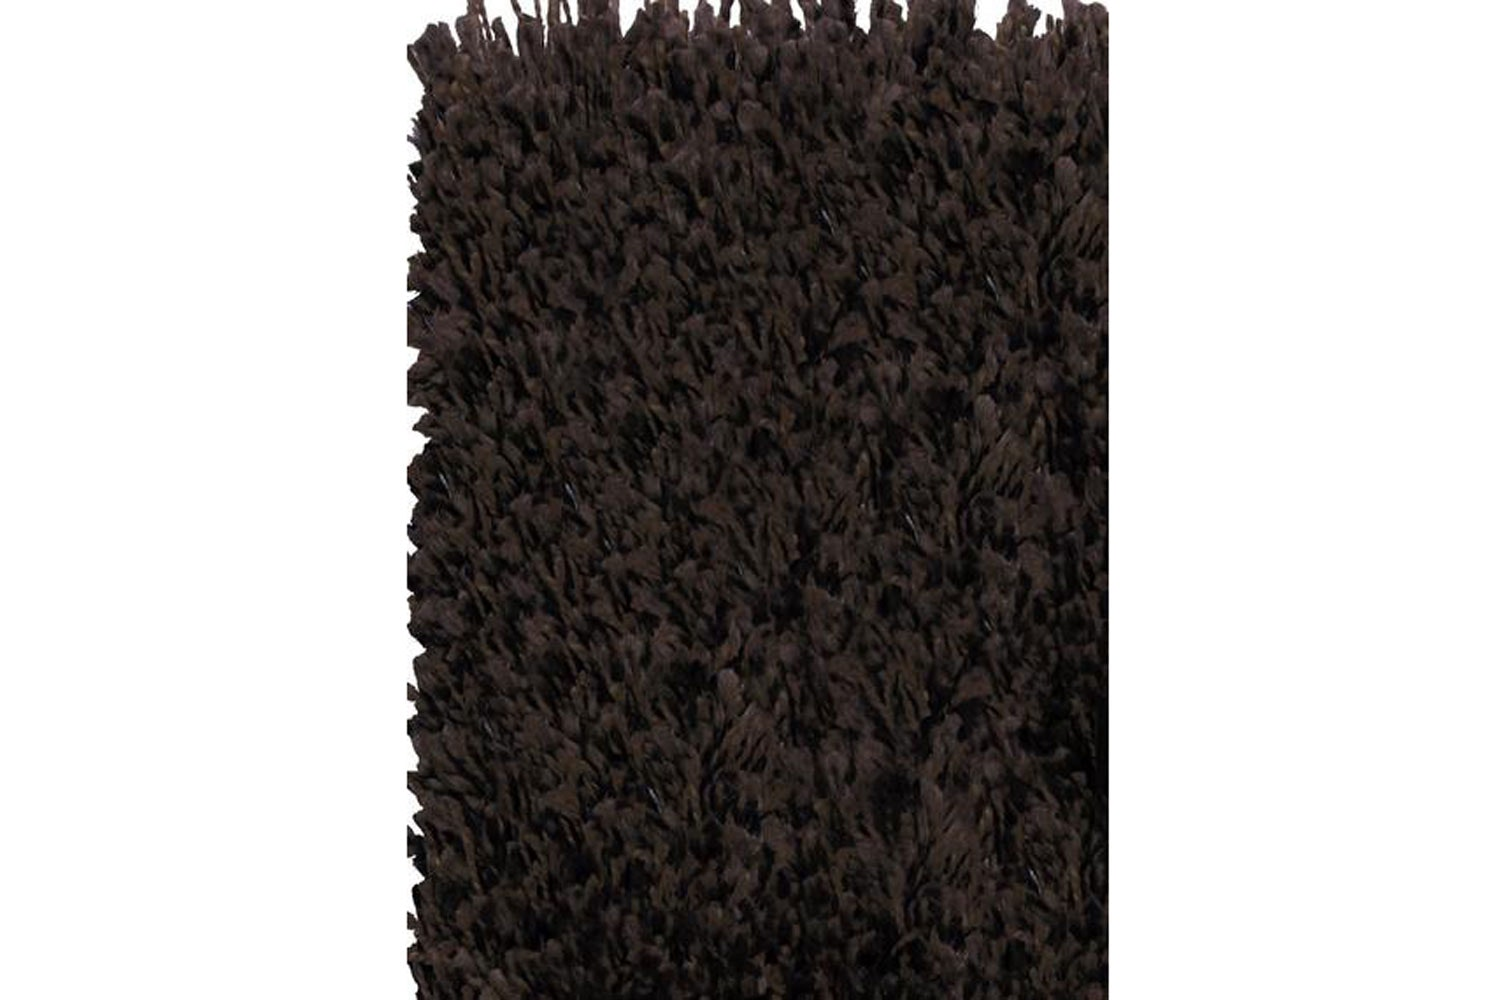 Ultimate Shag Rug - Espresso Brown